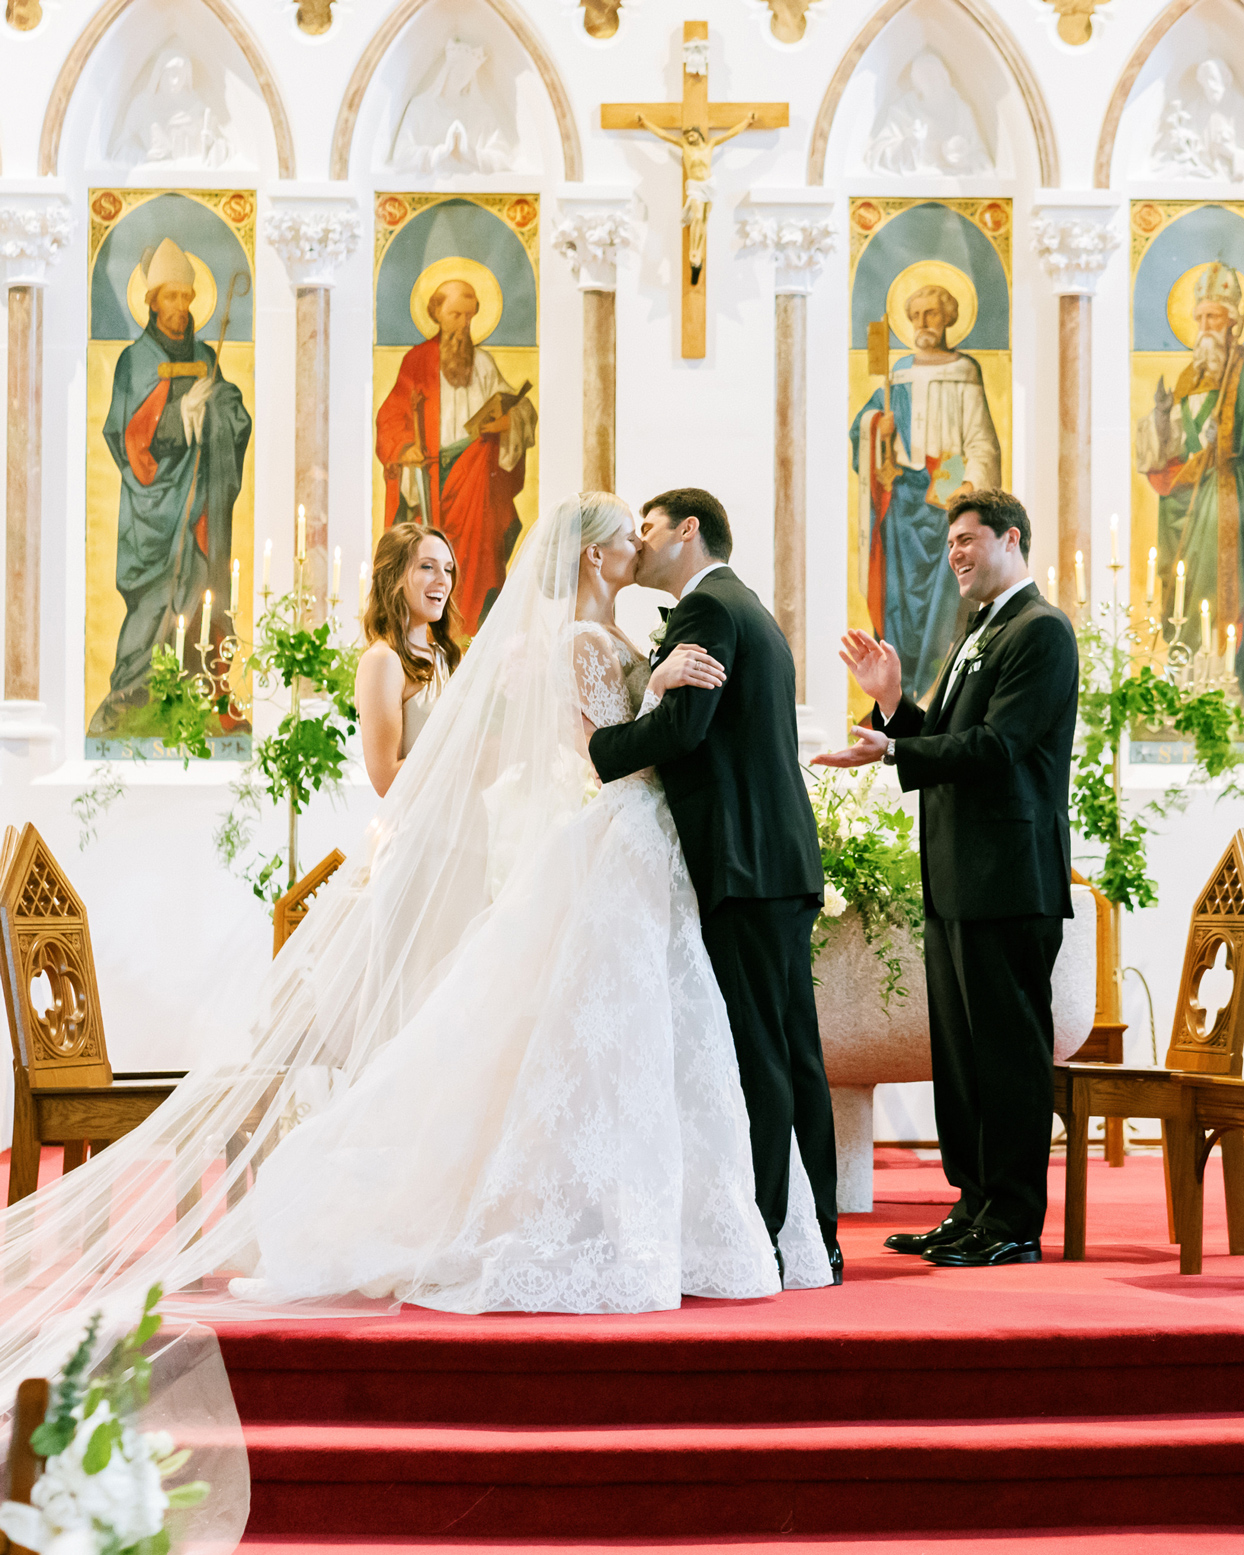 bride and groom kiss during wedding ceremony in church